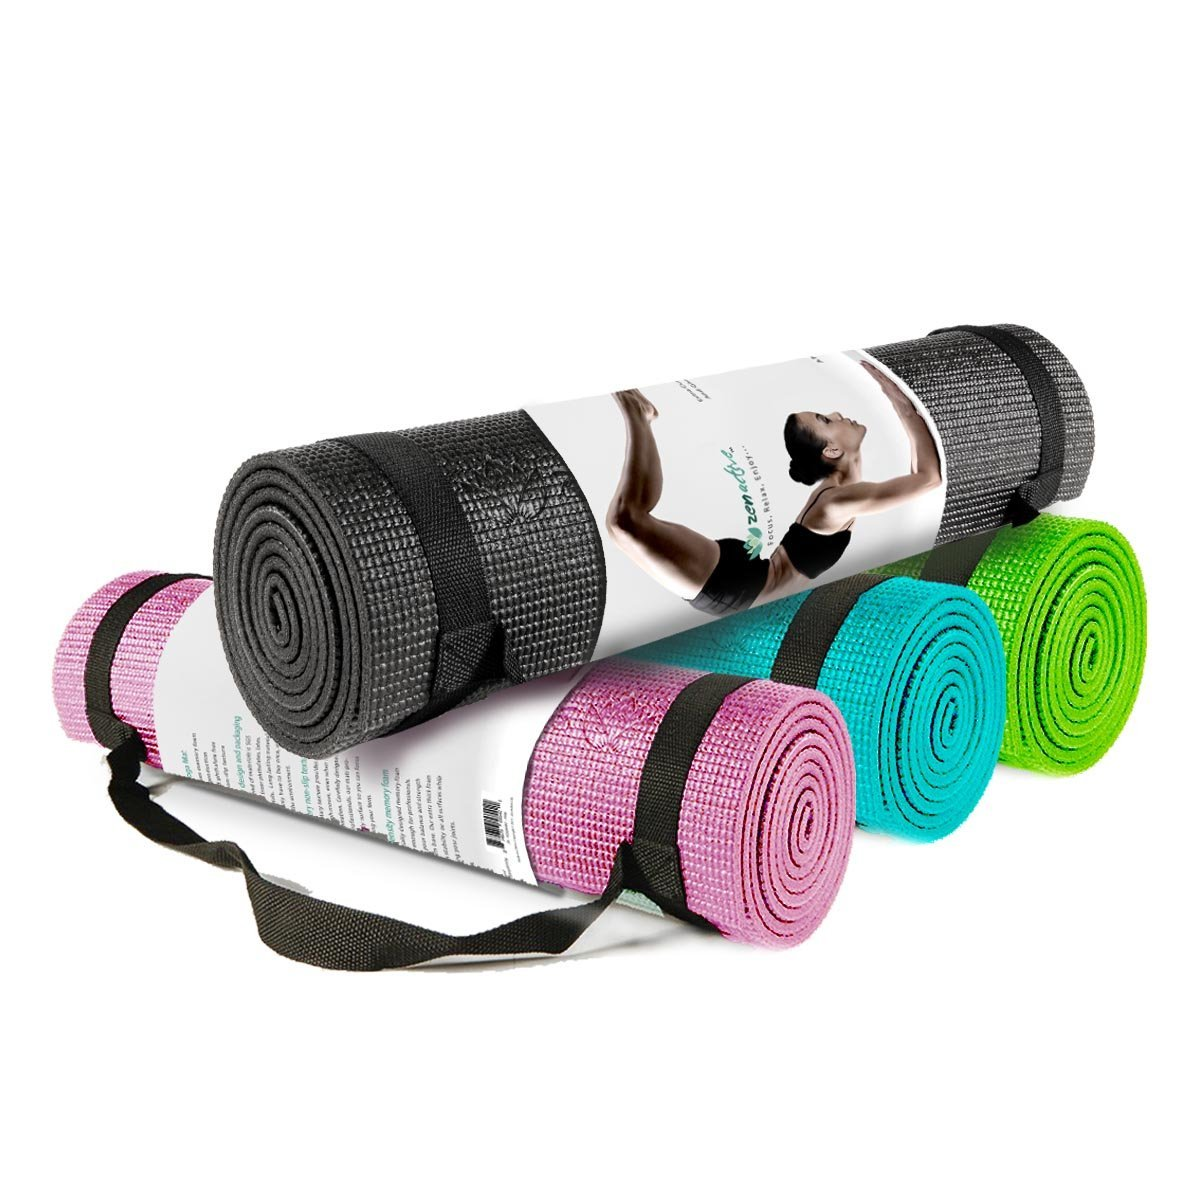 ZenActive Tranquility Yoga Mat with Carrying Strap